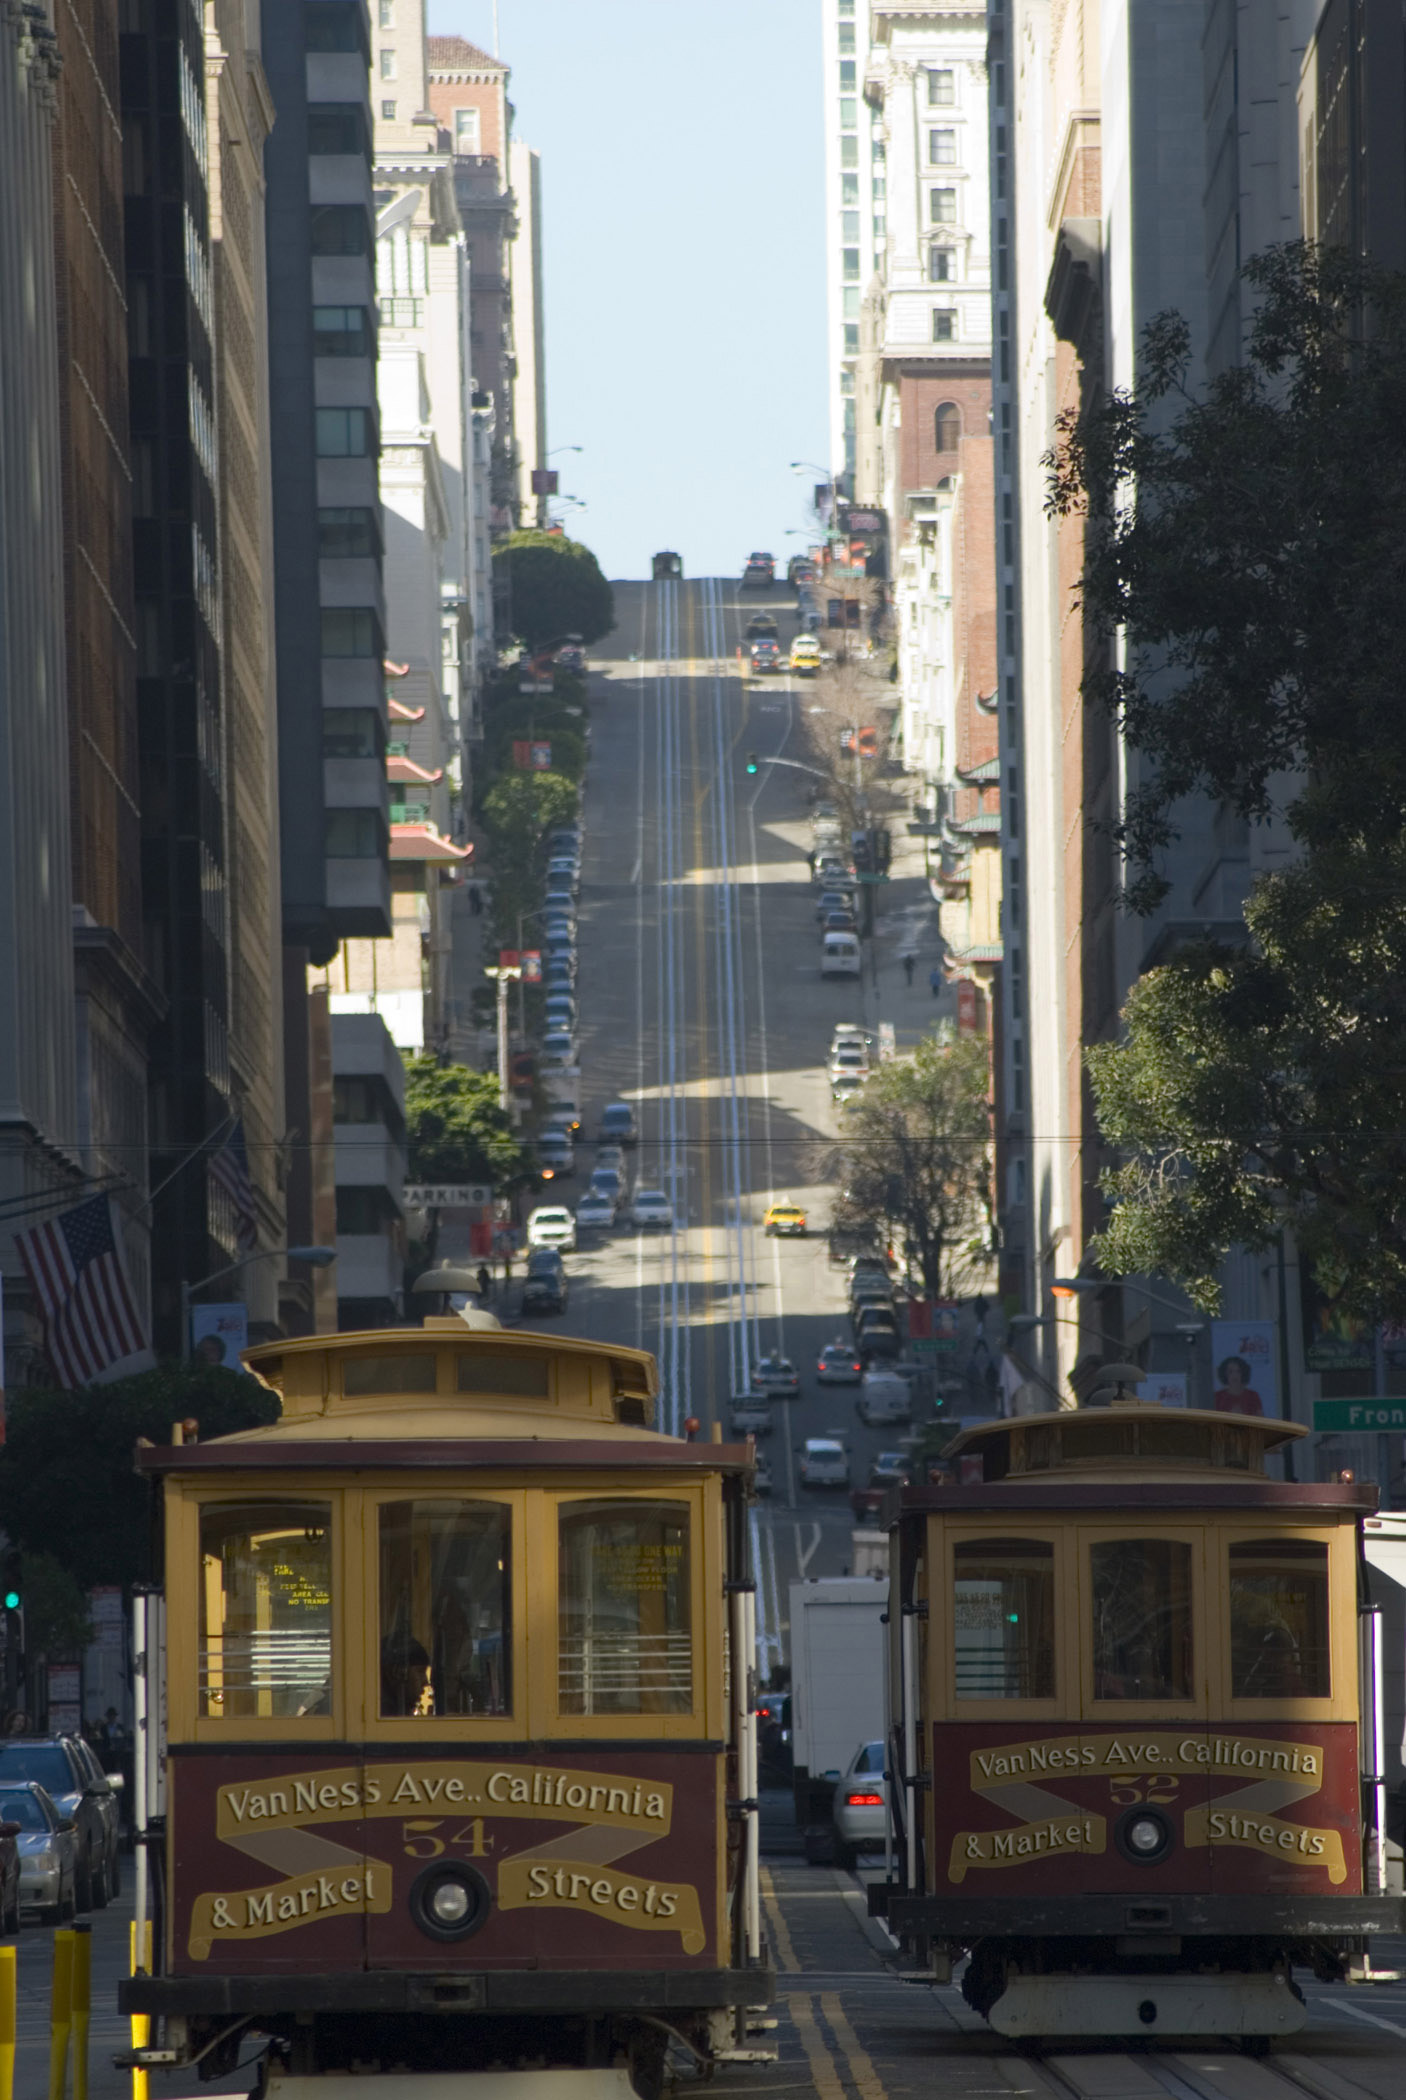 Trams passing each other on a steep urban street in Nob Hill,an affluent neighbourhood of San Francisco, California, USA